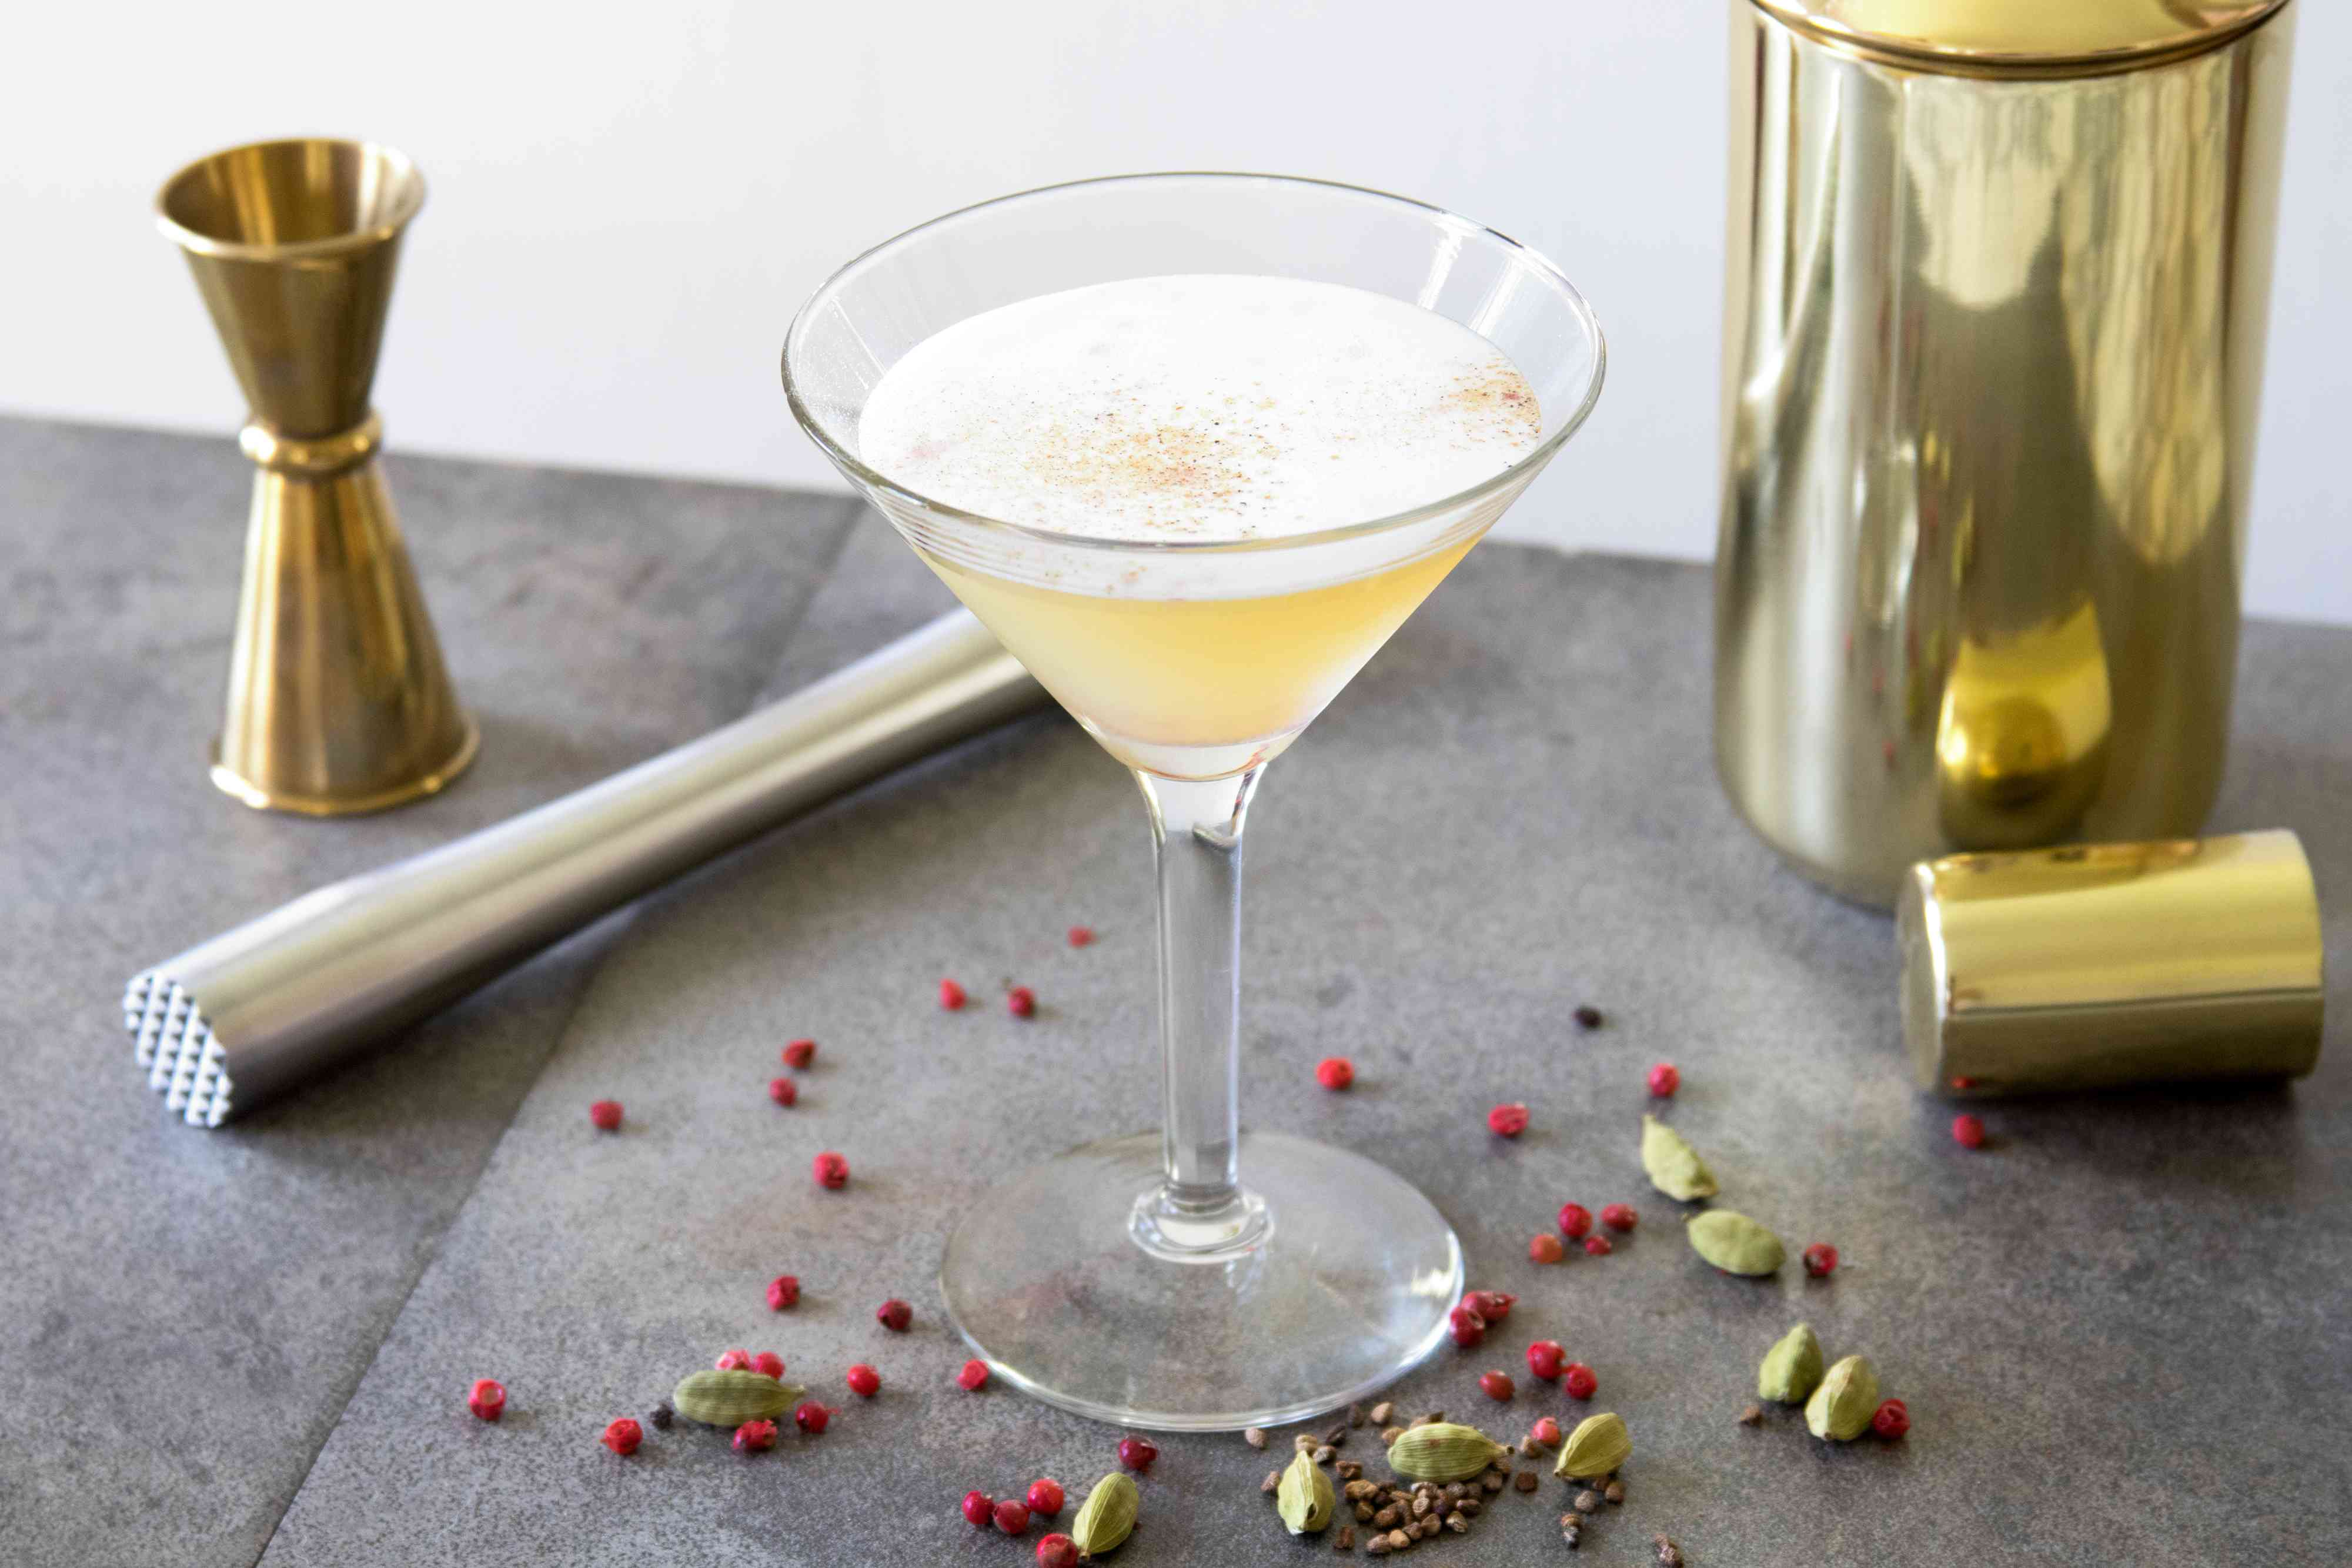 Aura in Me Cocktail With Cardamom and Pink Peppercorn